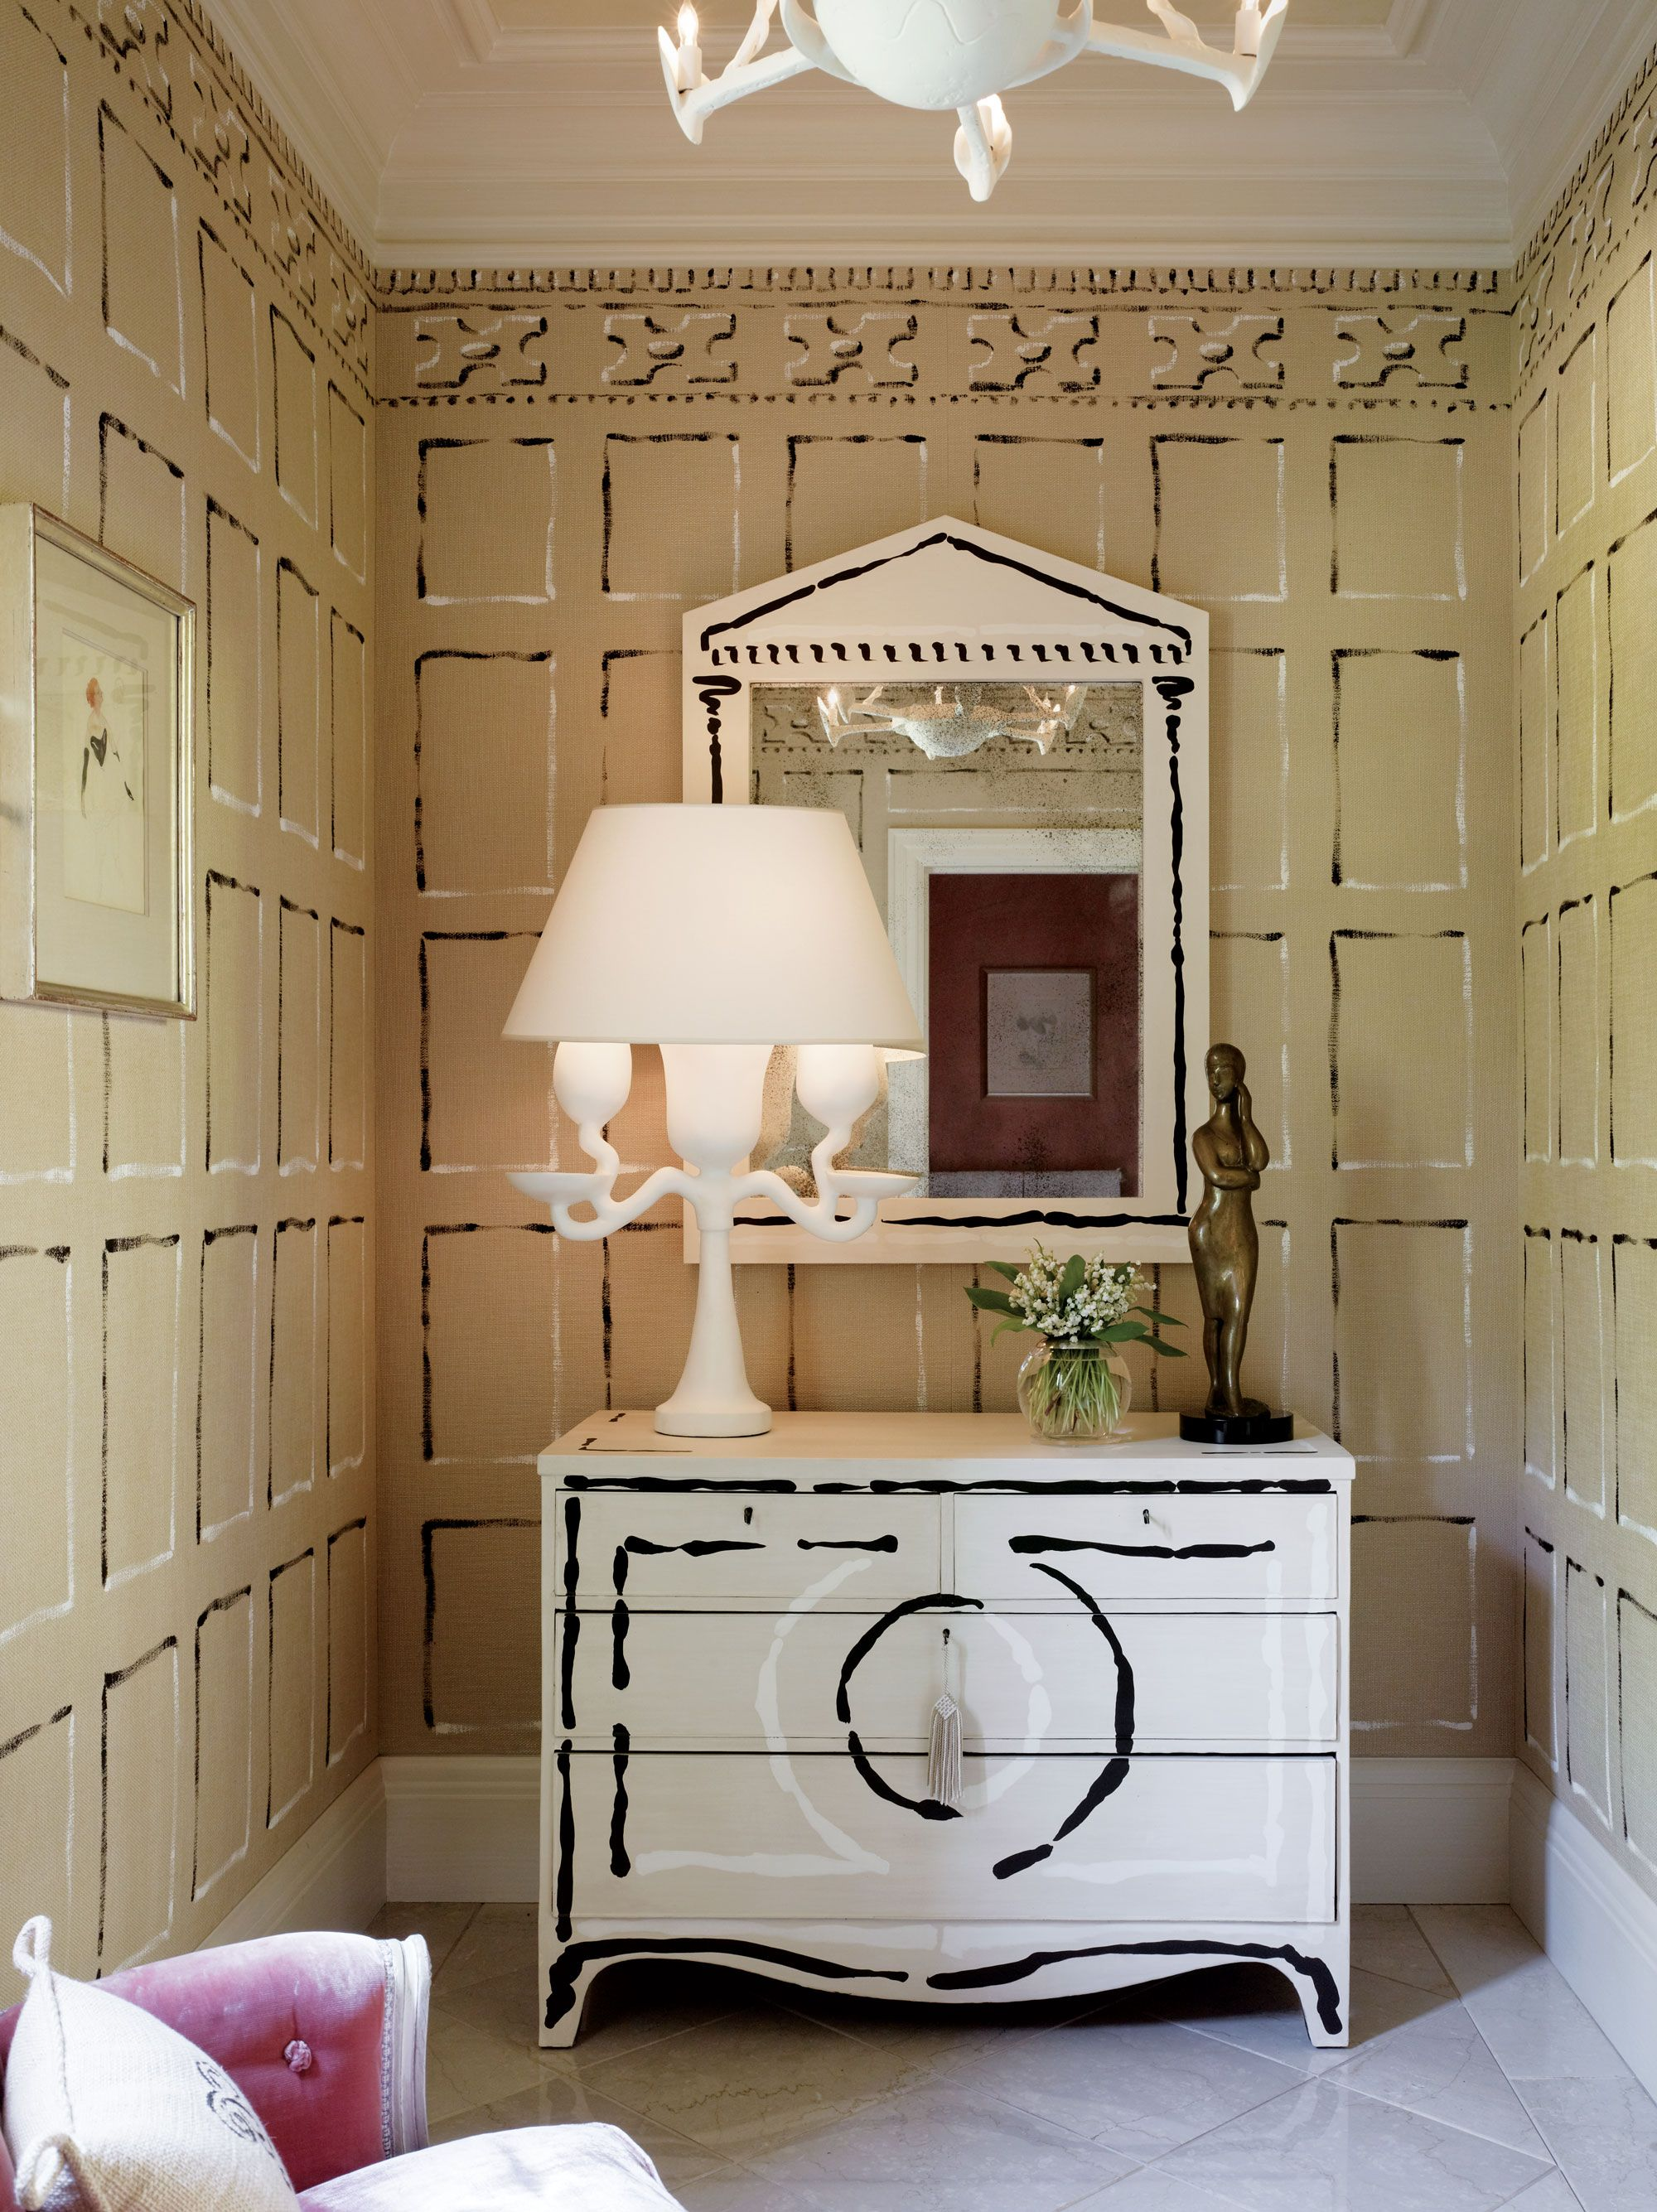 The Powder Room Walls Cabinet And Mirror Painted In A Charming